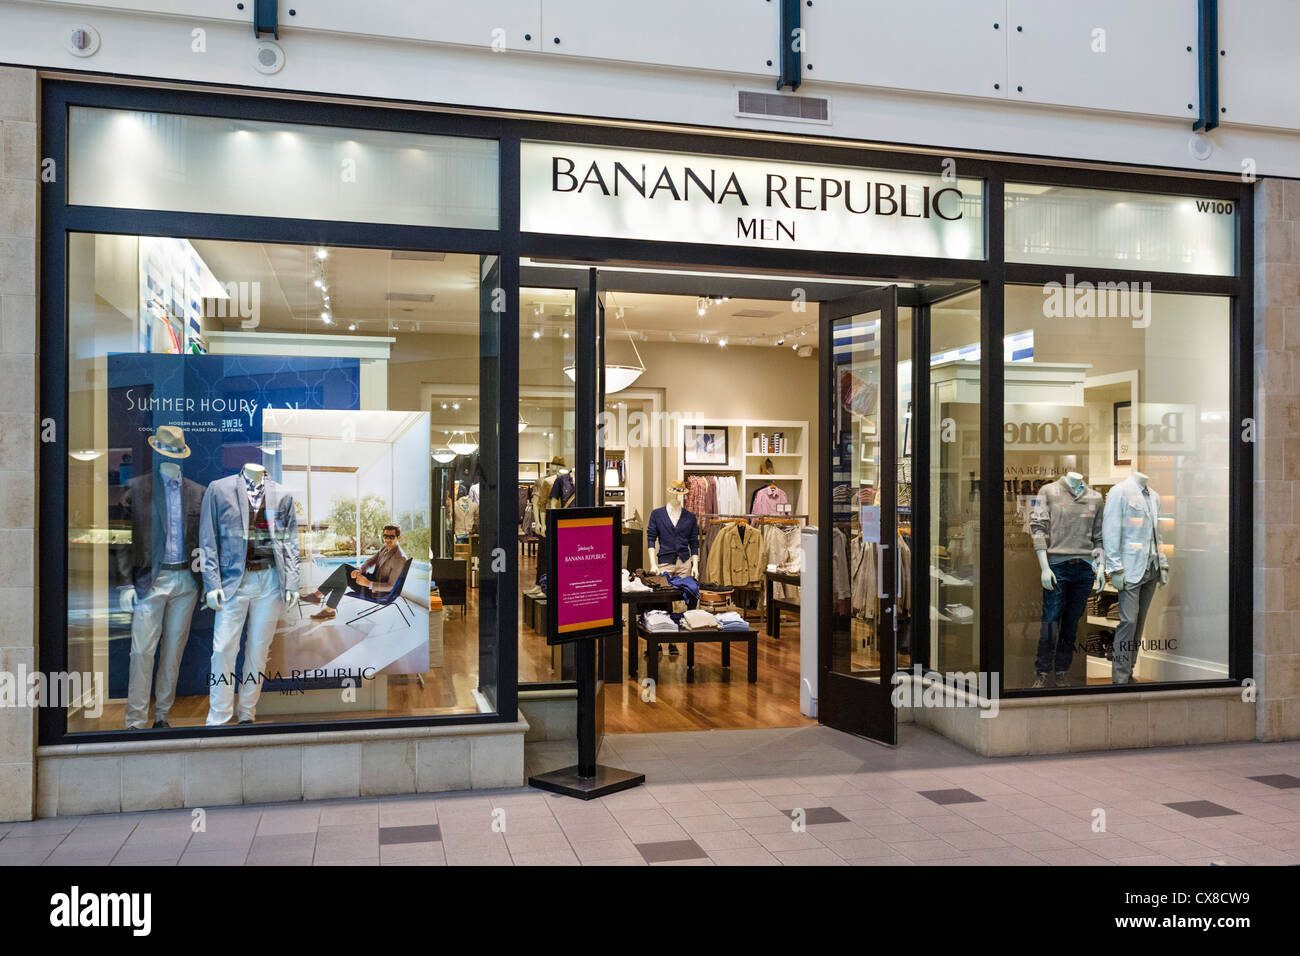 Then, while you're shopping with Banana Republic Factory Store, sign up for emails if you can. This is an easy way to get alerts about promotions without having to hunt them down. And lastly, don't forget to check the sale and clearance sections.